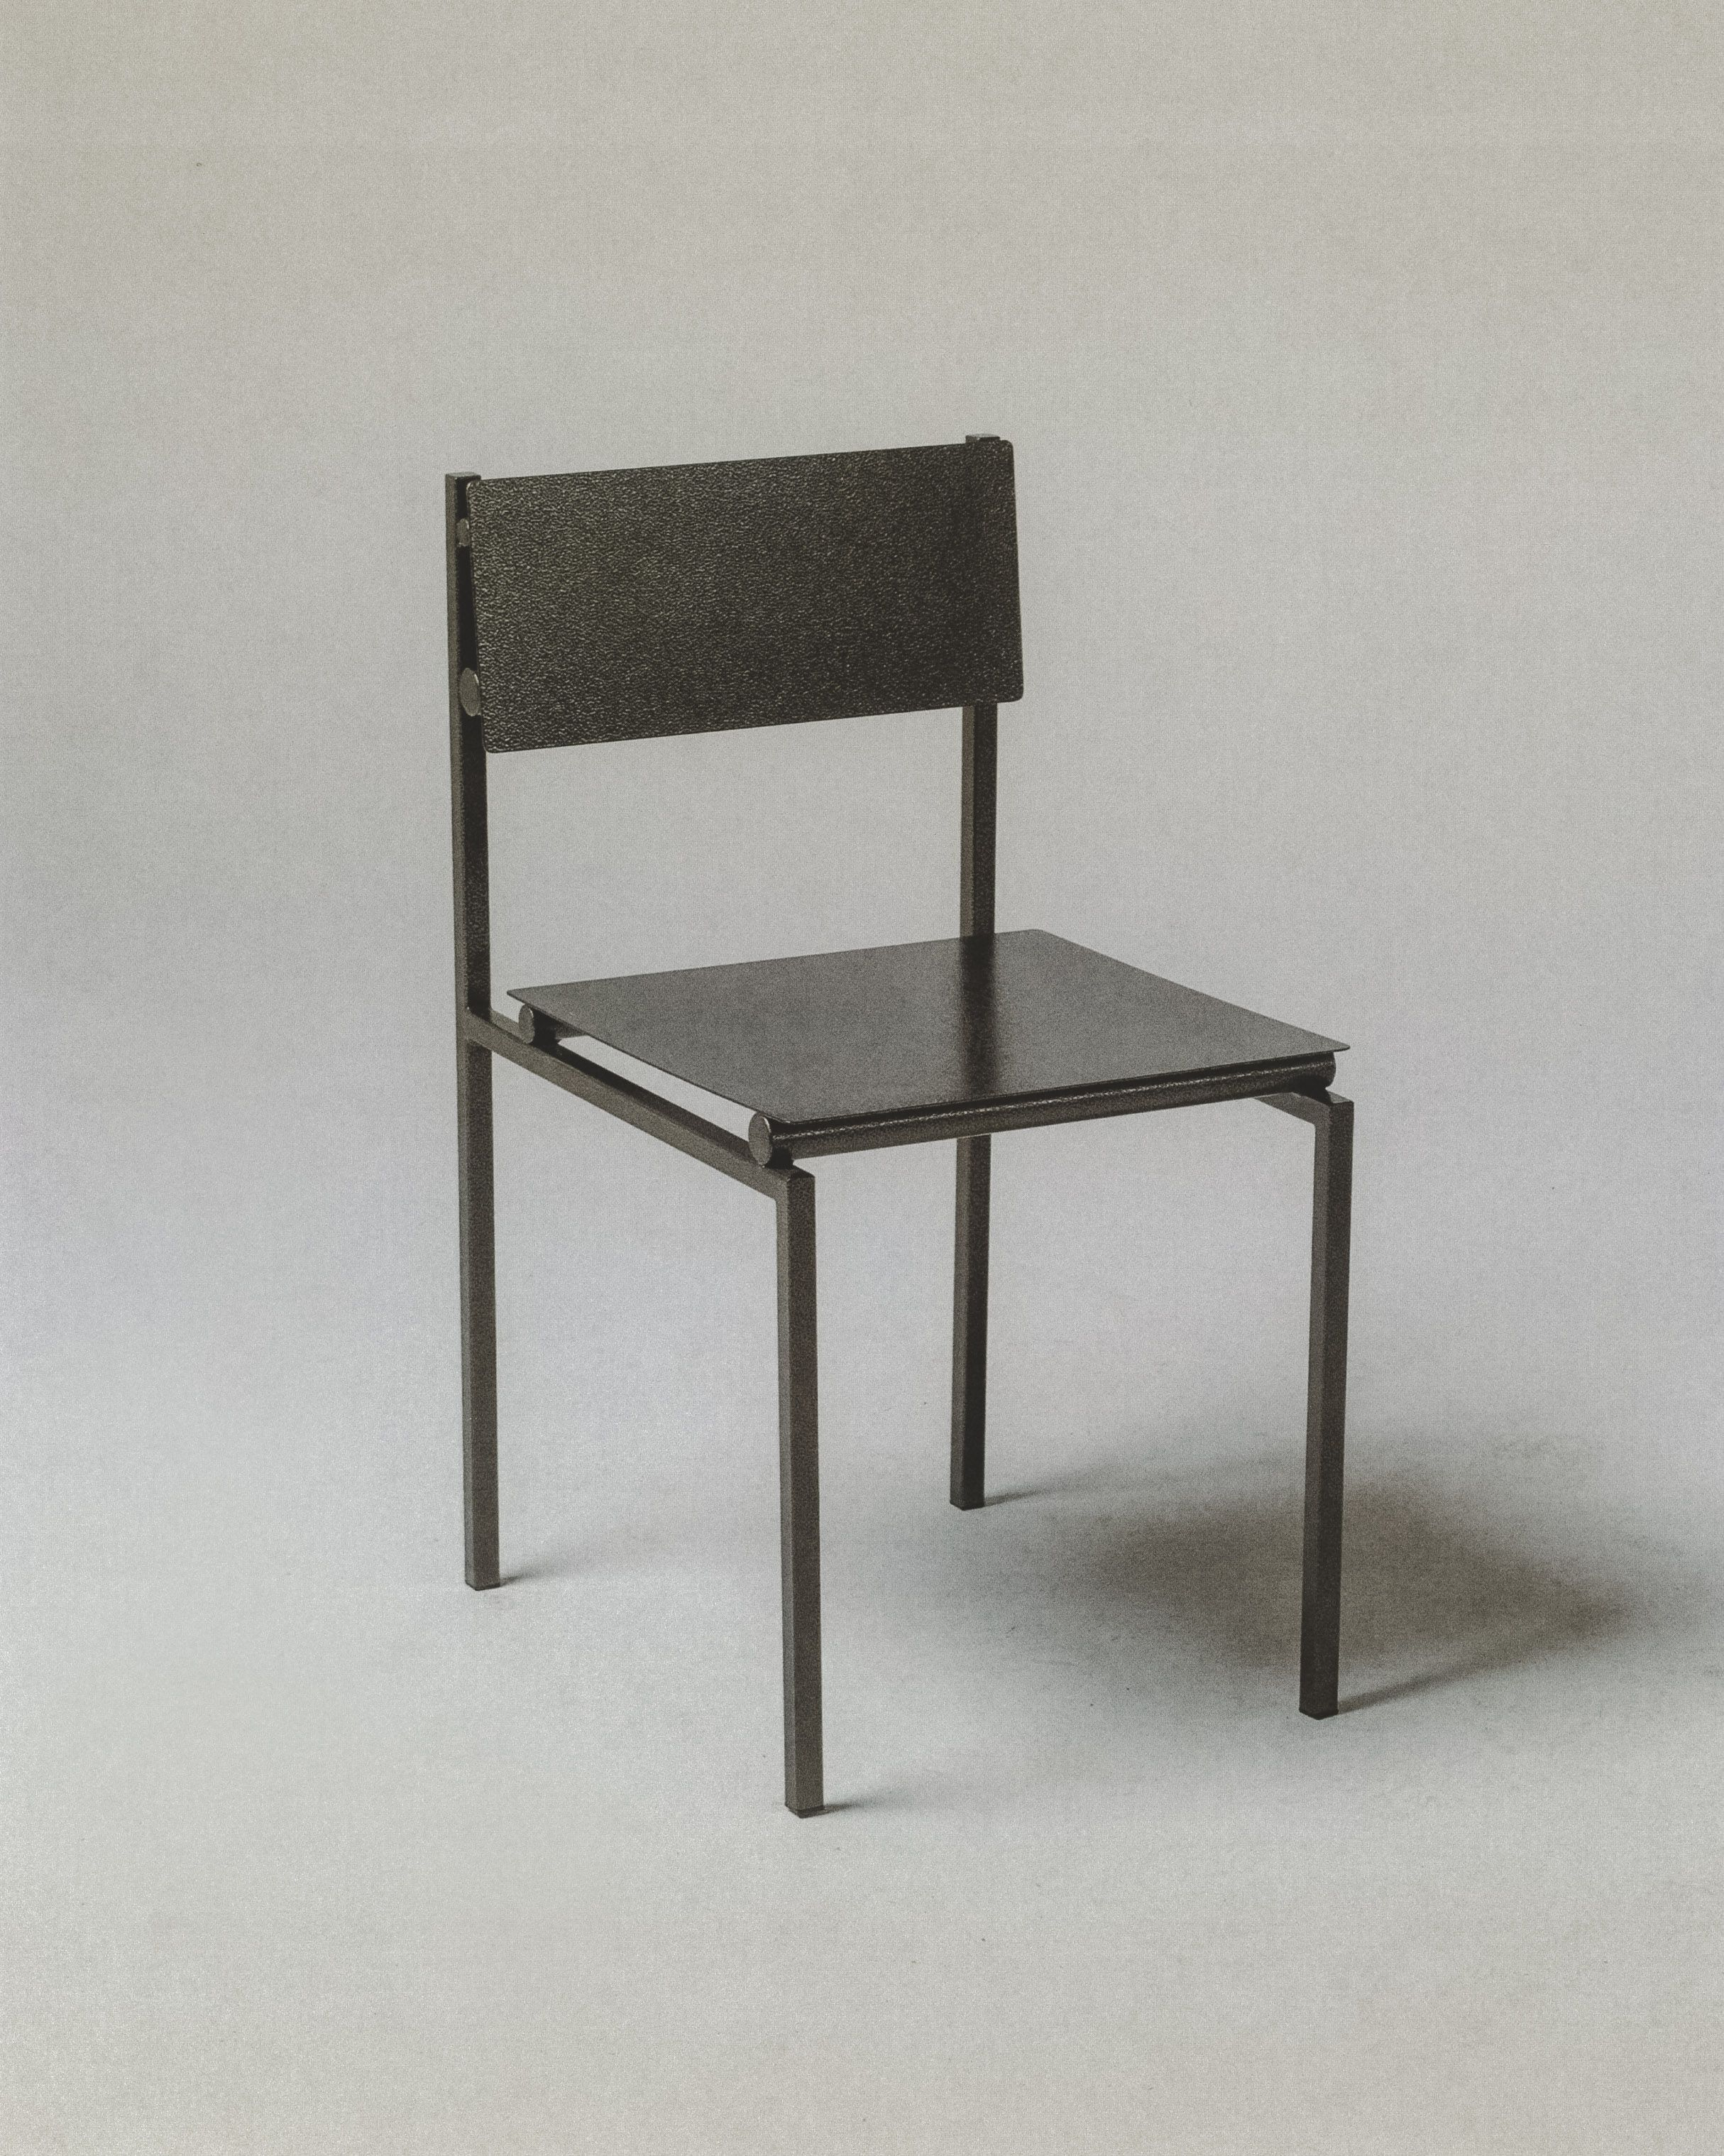 Suspension Metal Dining product image 0